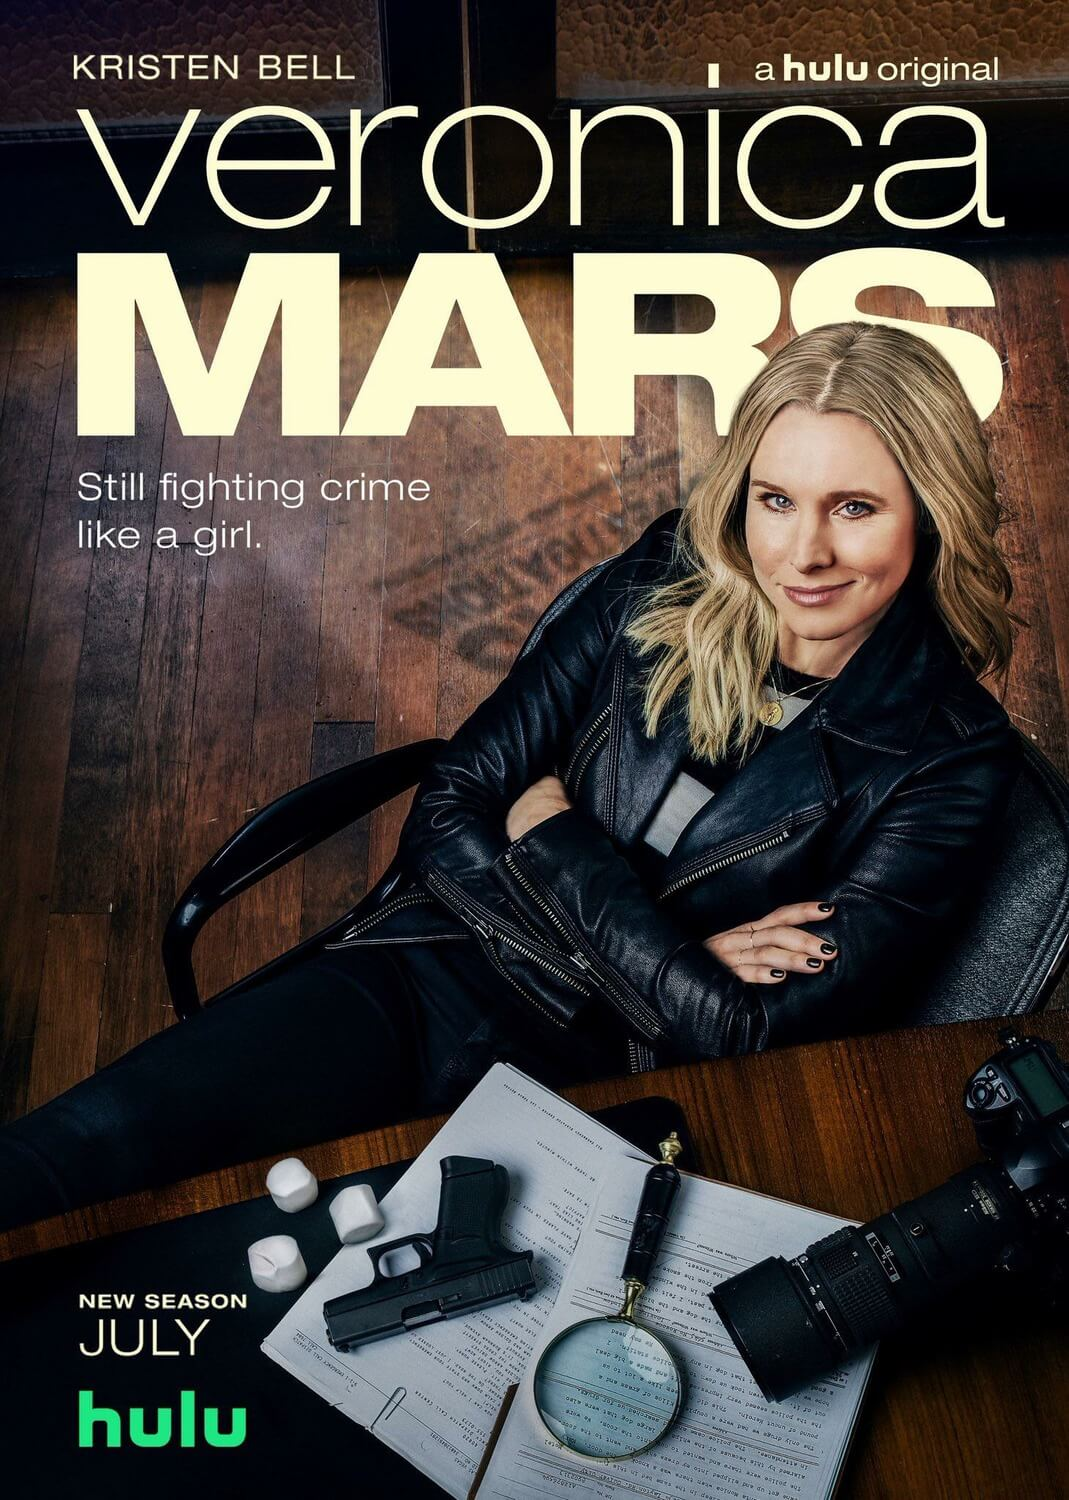 veronica_mars_ver3_xlg